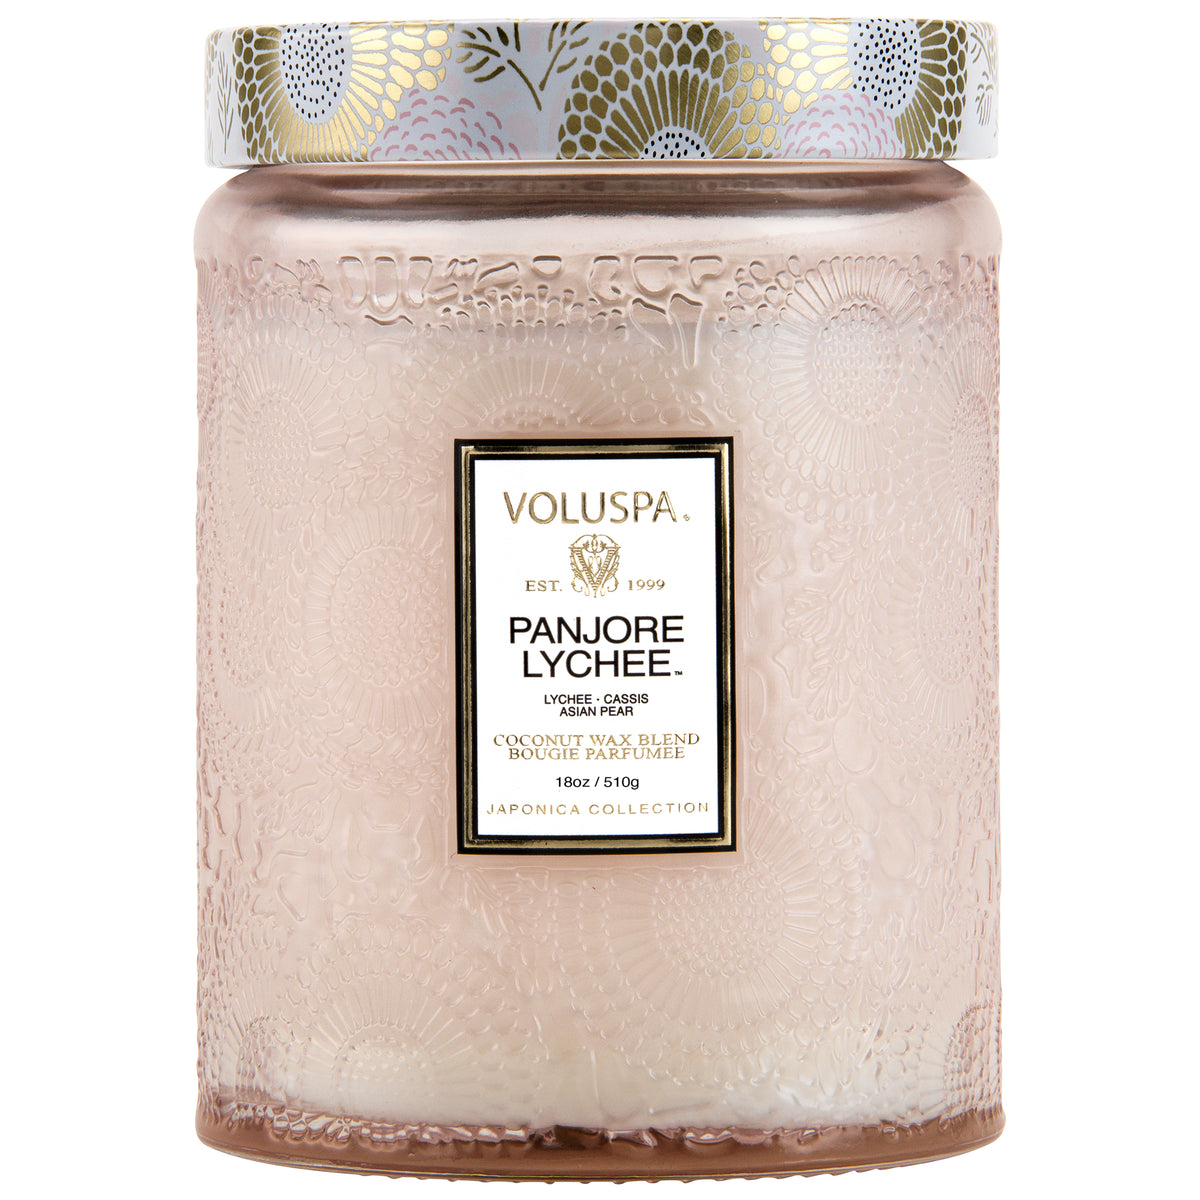 Panjore Lychee - Large Jar Candle - 1